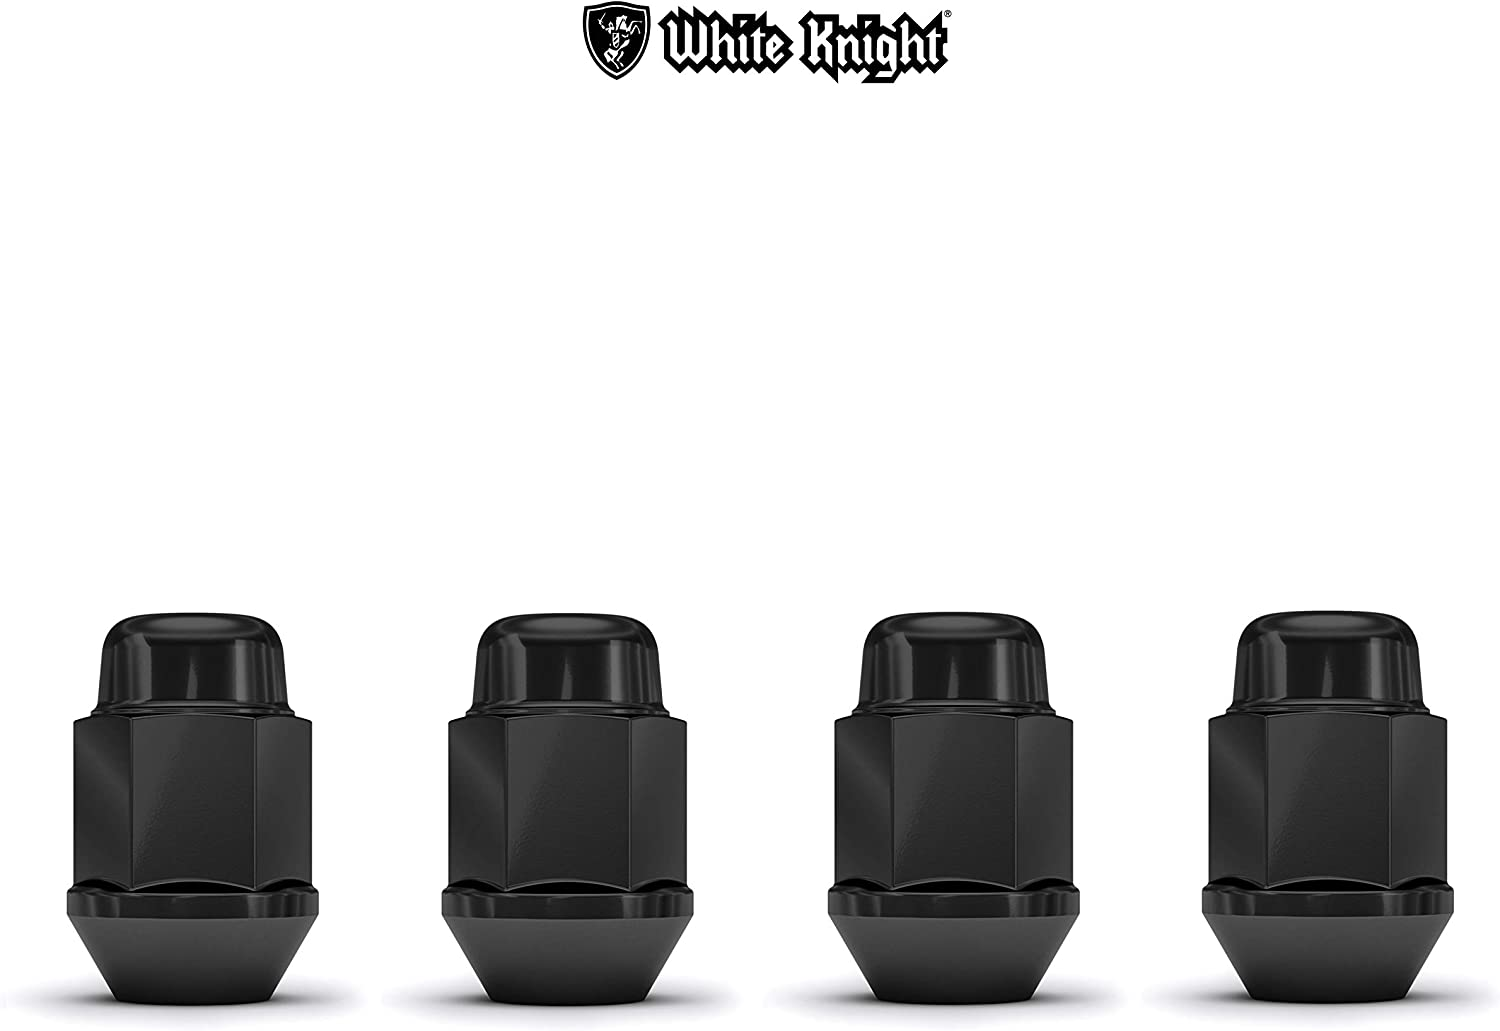 White Knight 1707SBK-4 Black M12x1.50 Bulge Acorn Lug Nut, 4 Pack